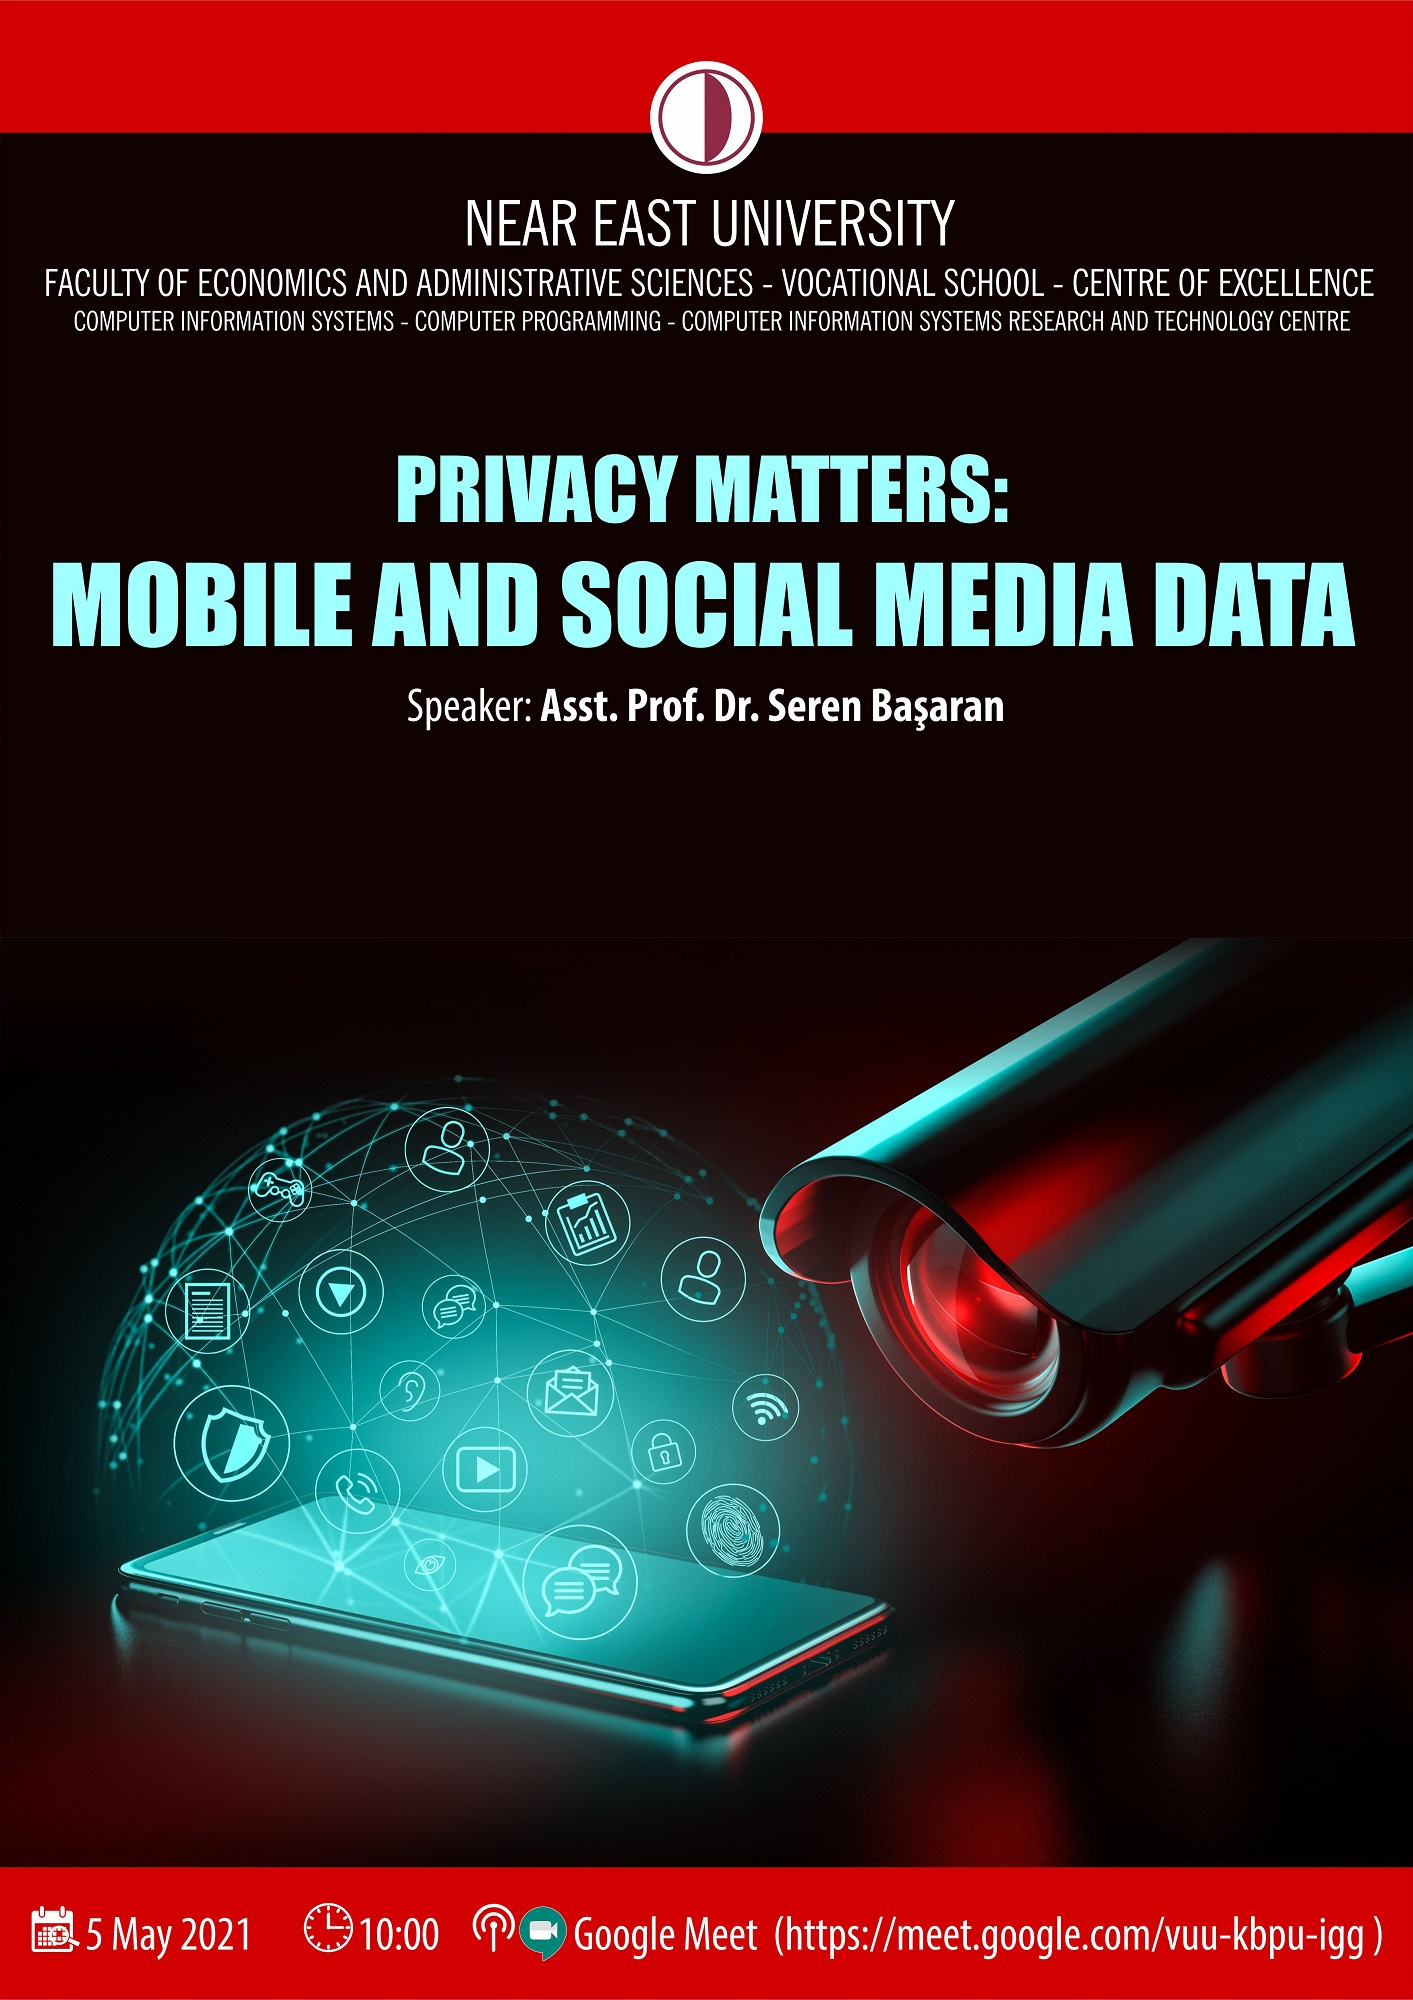 Privacy Matters: Mobile and Social Media Data